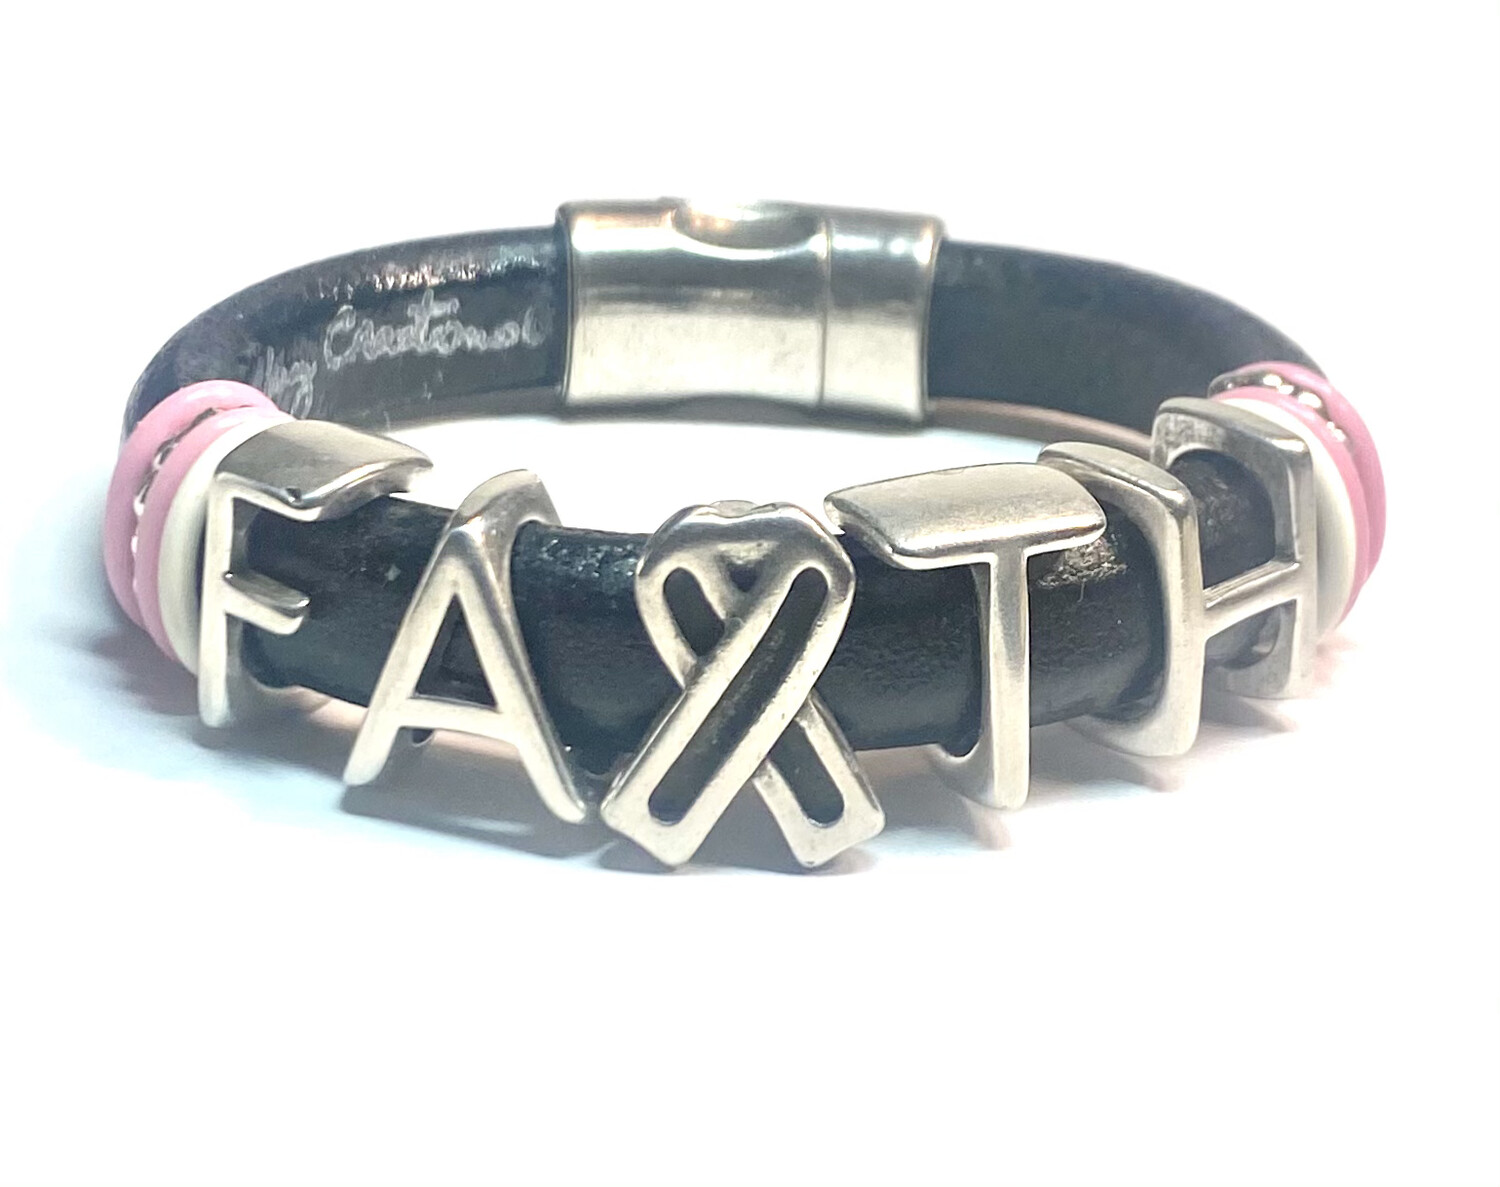 Bracelet | Women's Black Leather Faith Bracelet Classy Creations Originals